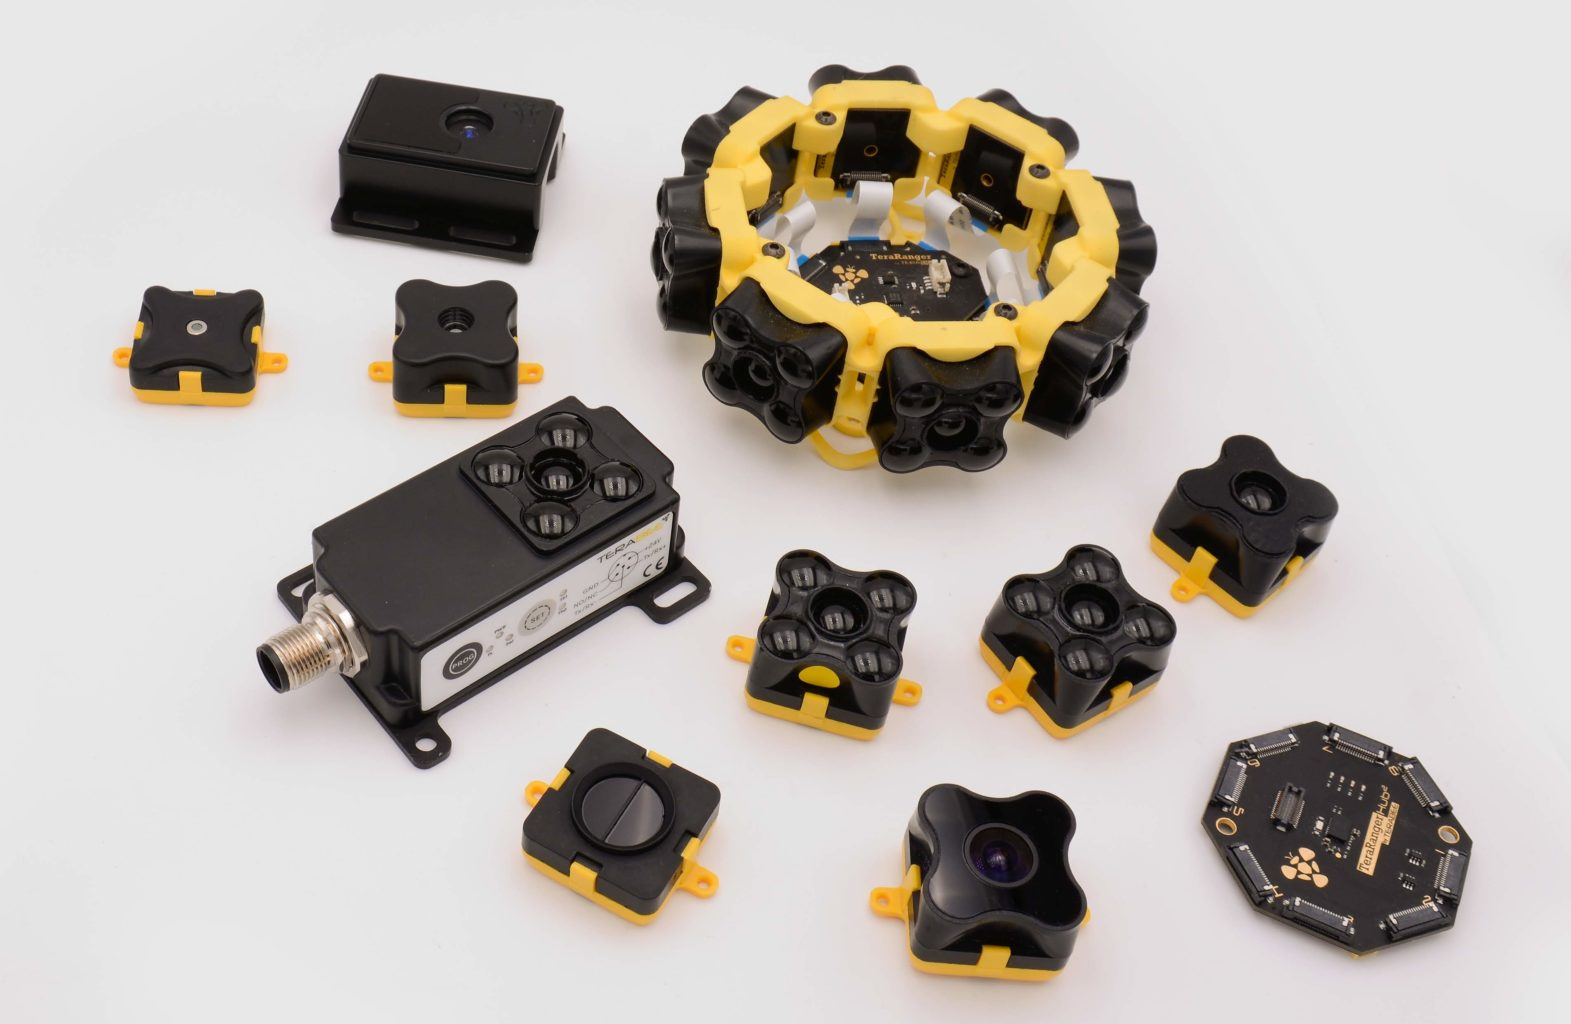 Benner Products Evo Mini Main Picture